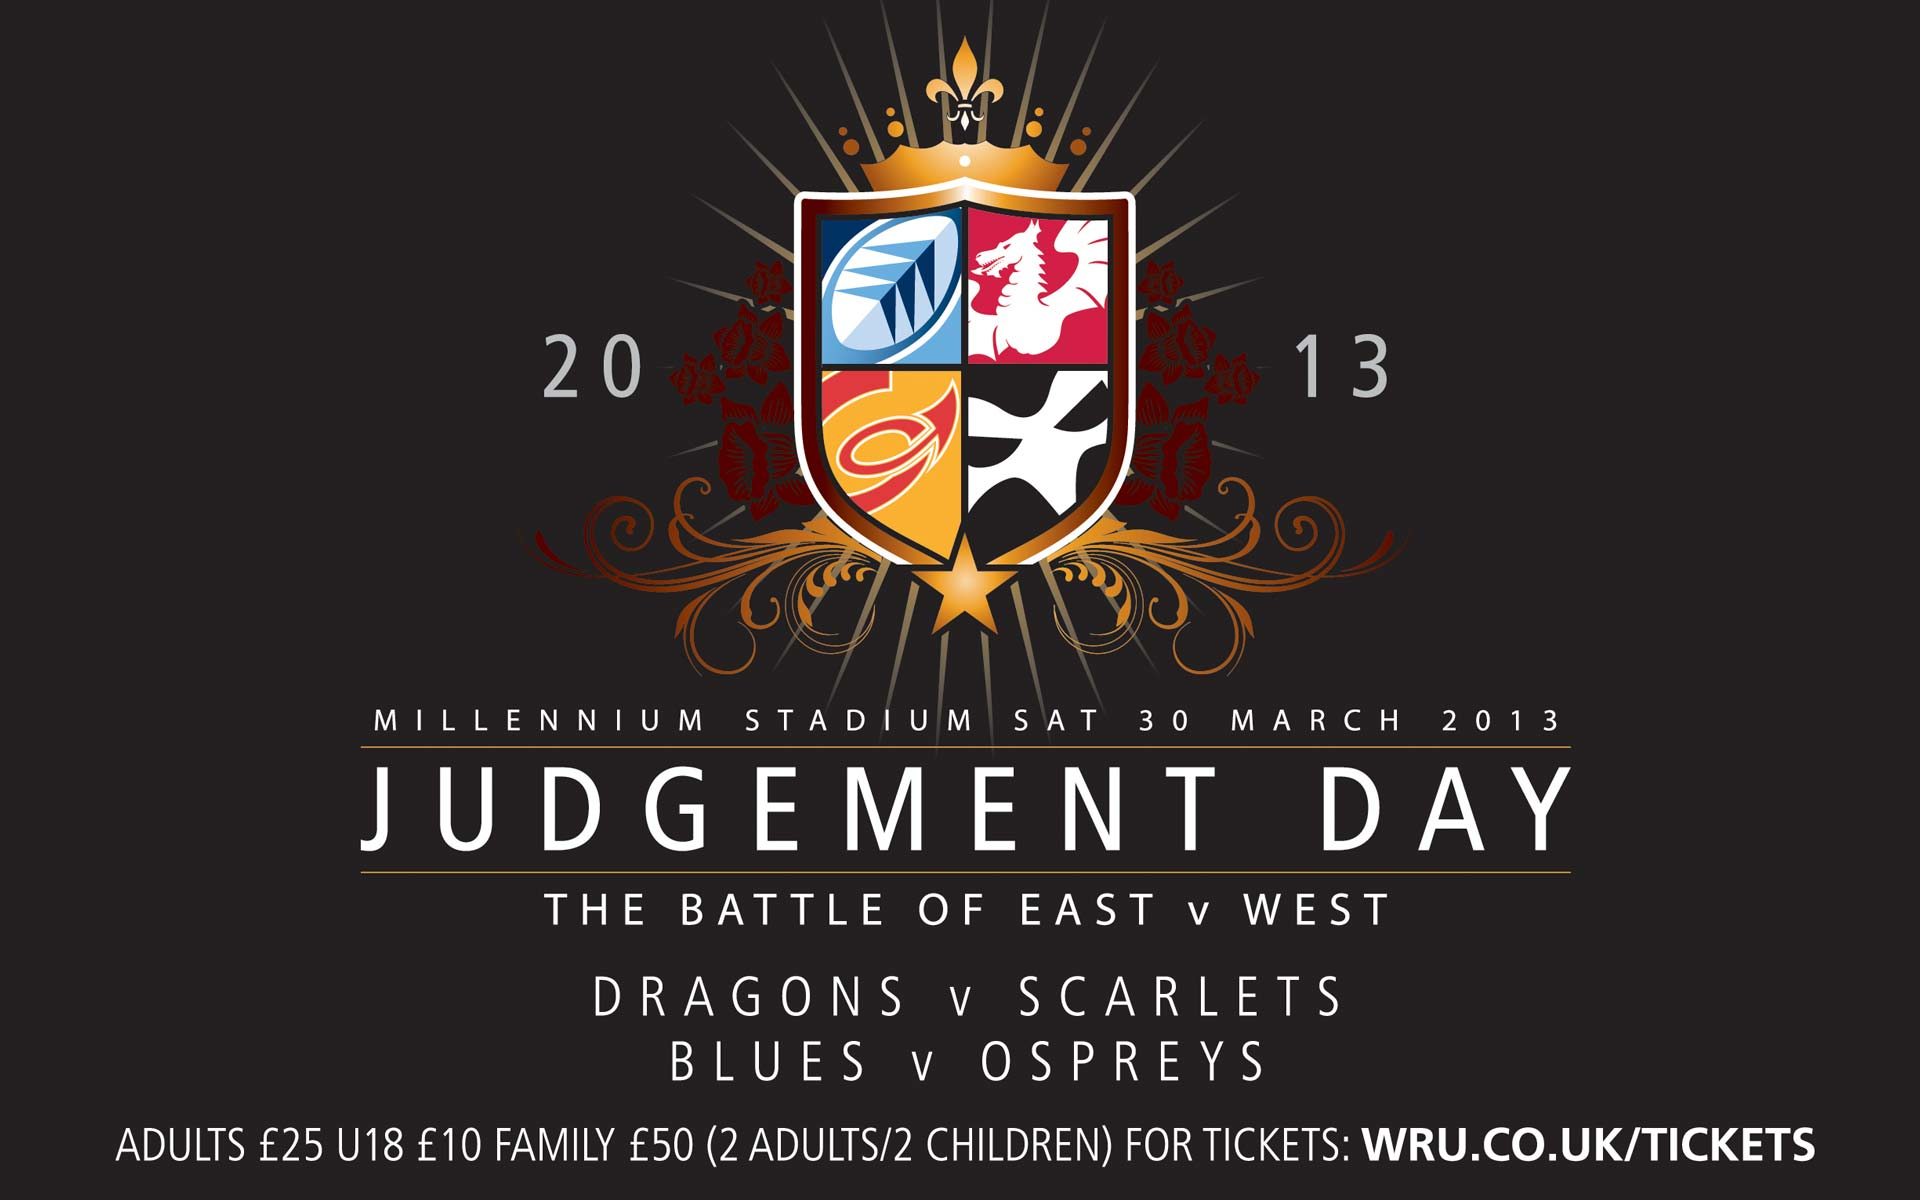 Judgement Day launches at Tesco stores